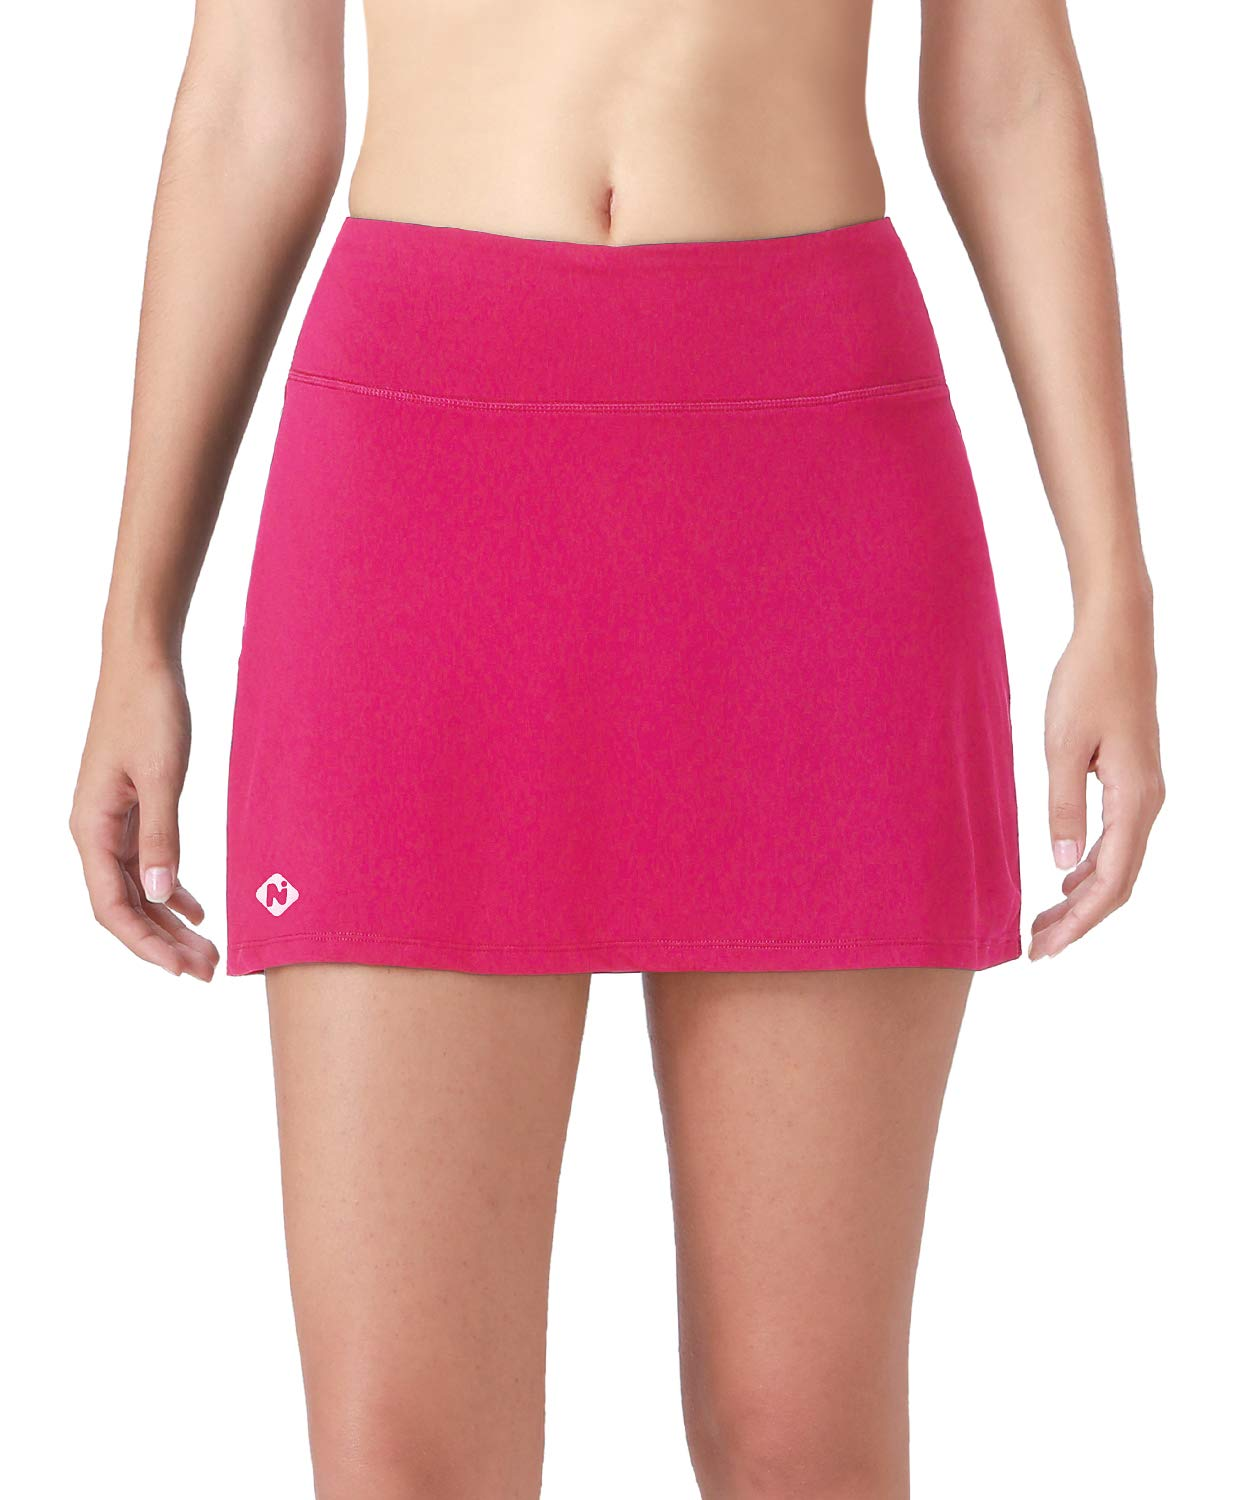 Naviskin Women's Active Athletic Skort Lightweight Skirt with Pockets Inner Shorts Perfect for Running Golf Tennis Workout Casual Use Rose Red Size S by Naviskin